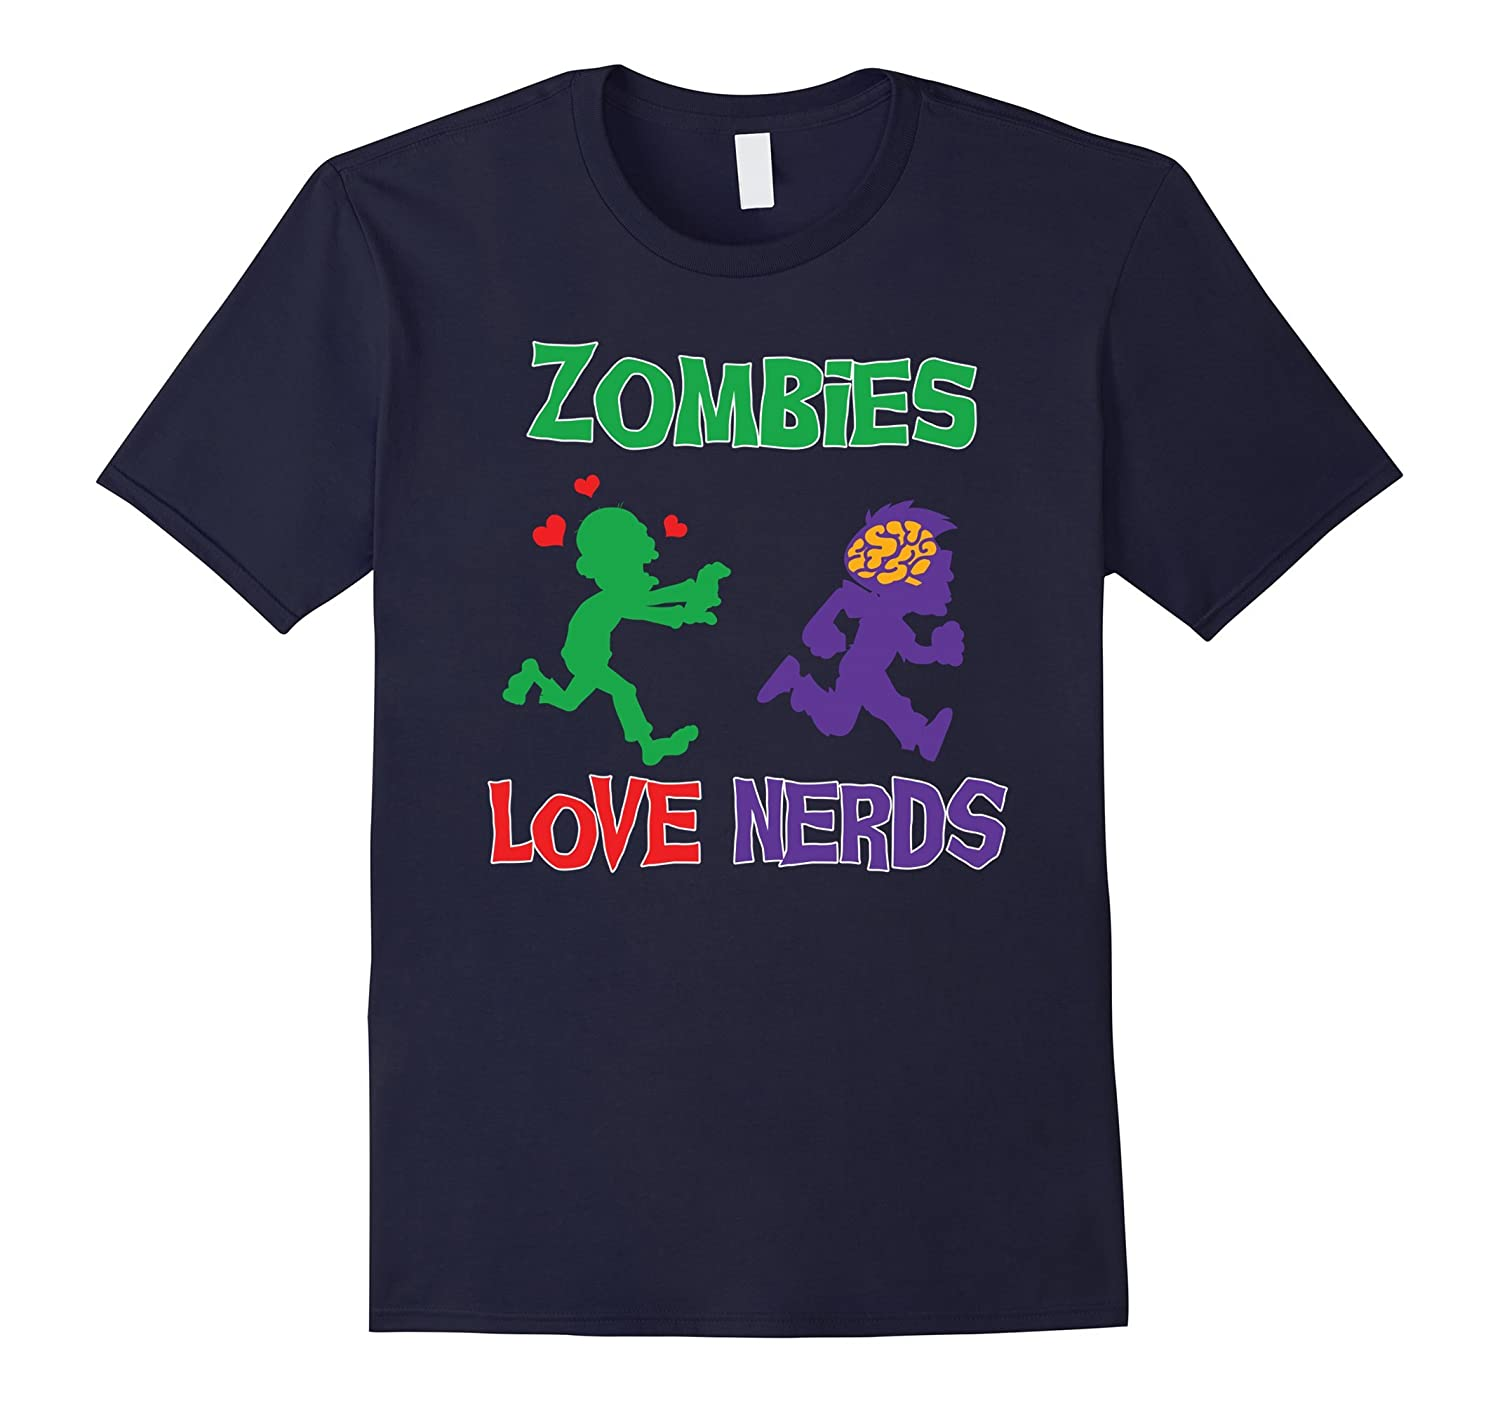 Zombie Geek T-shirt by Zany Brainy  Zombies Love Nerds-TH